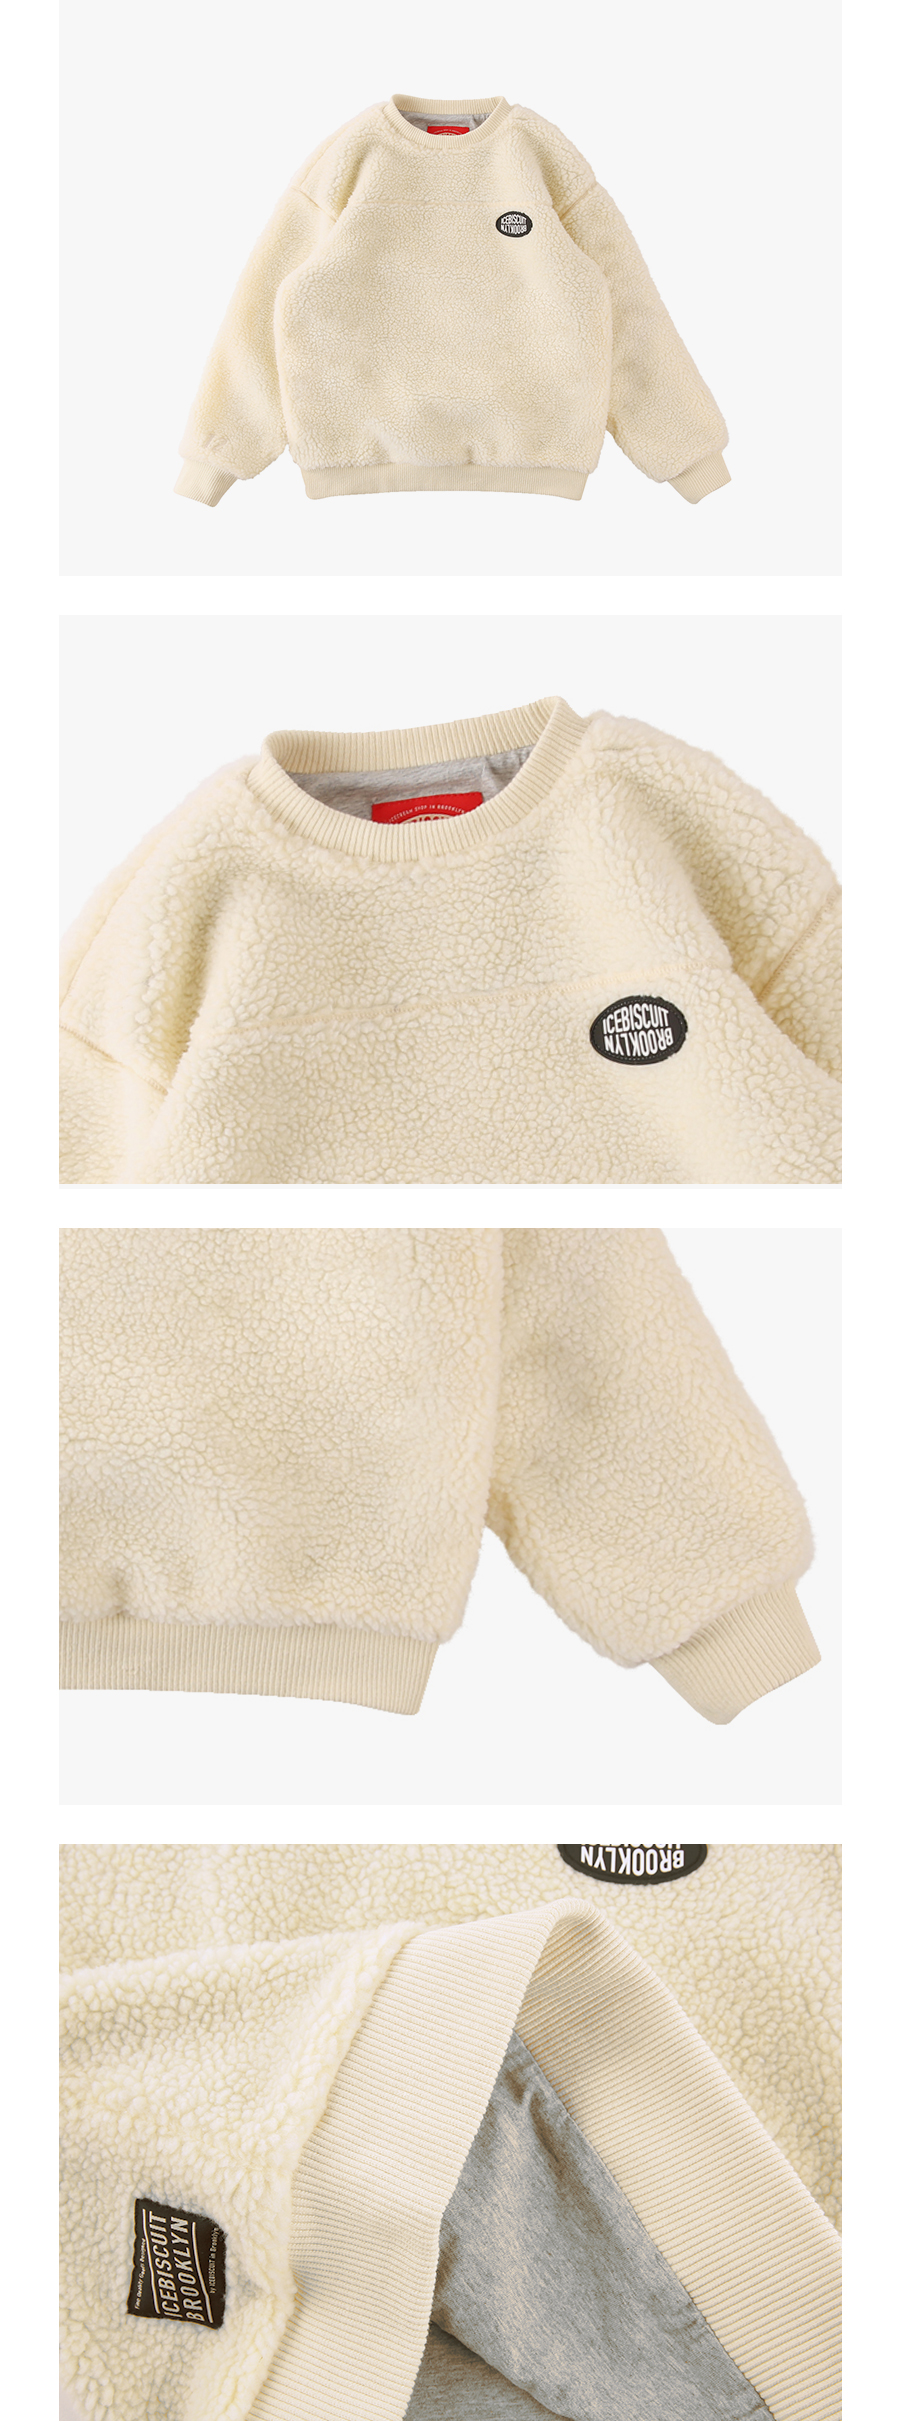 Icebiscuit sherpa fleece pullover 상세 이미지